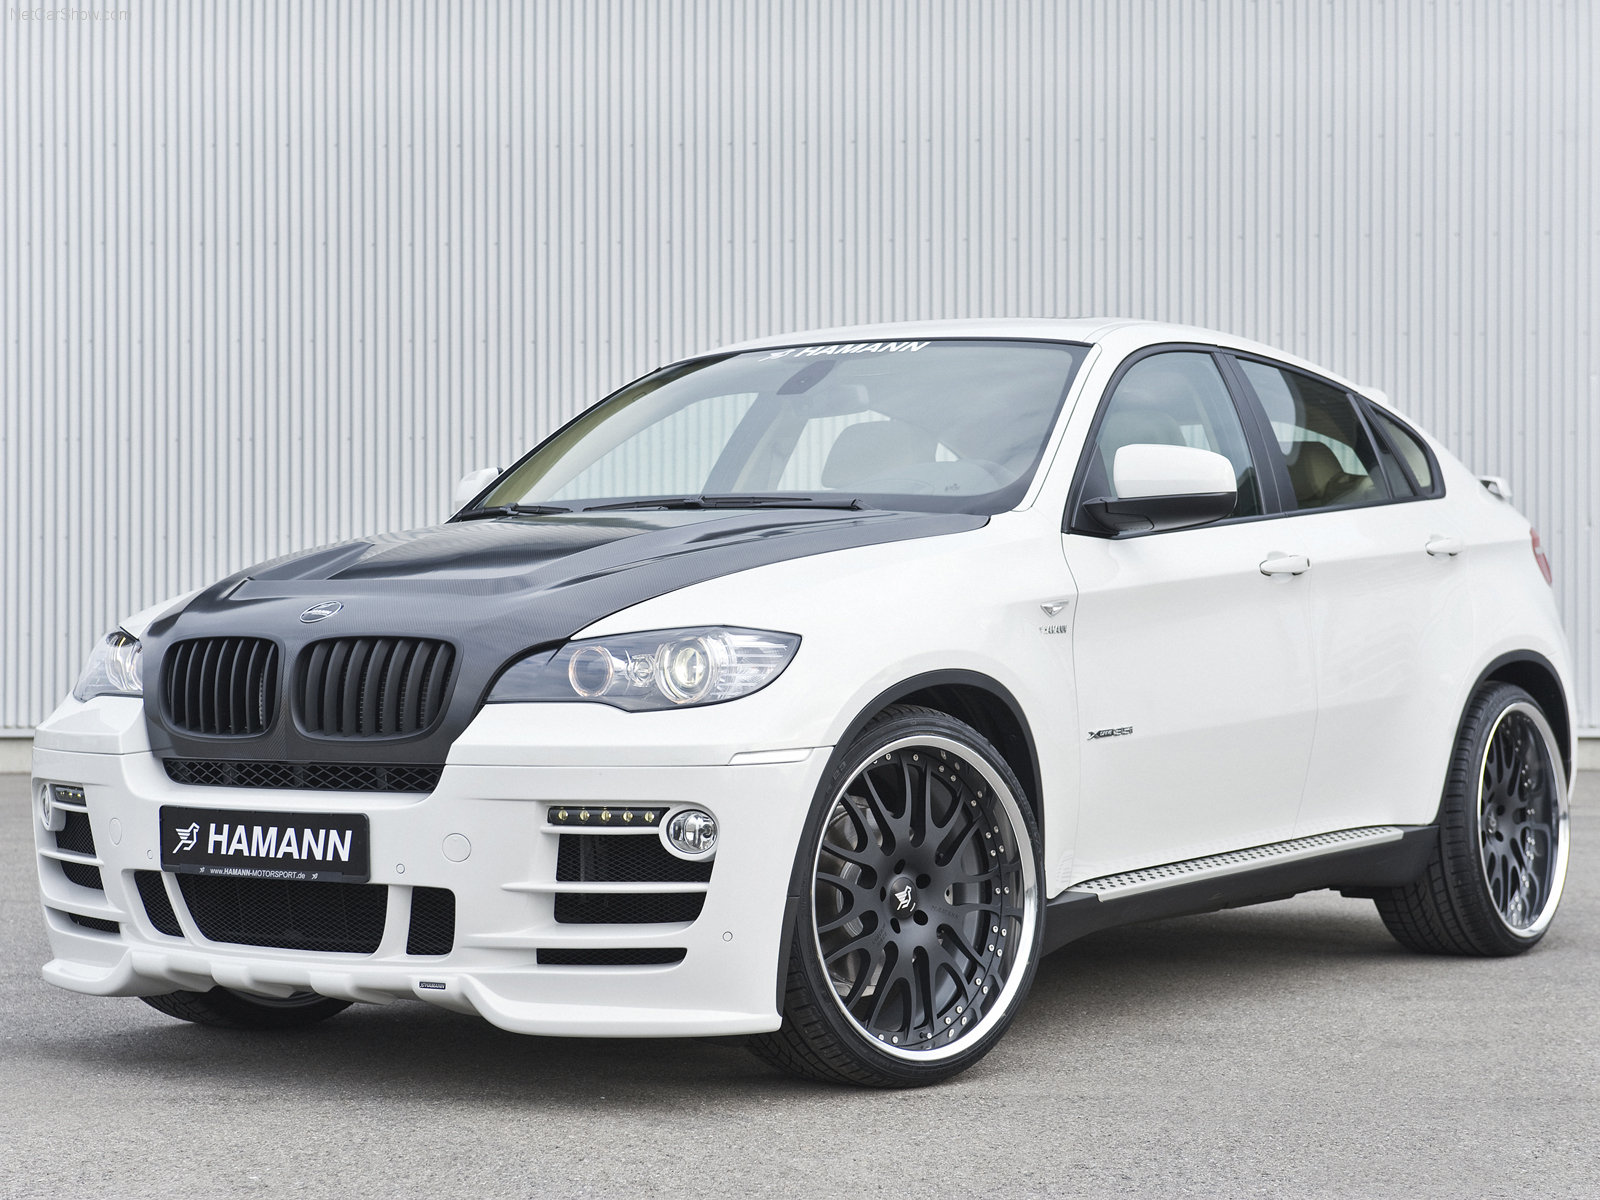 hamann bmw x6 photos photogallery with 10 pics. Black Bedroom Furniture Sets. Home Design Ideas